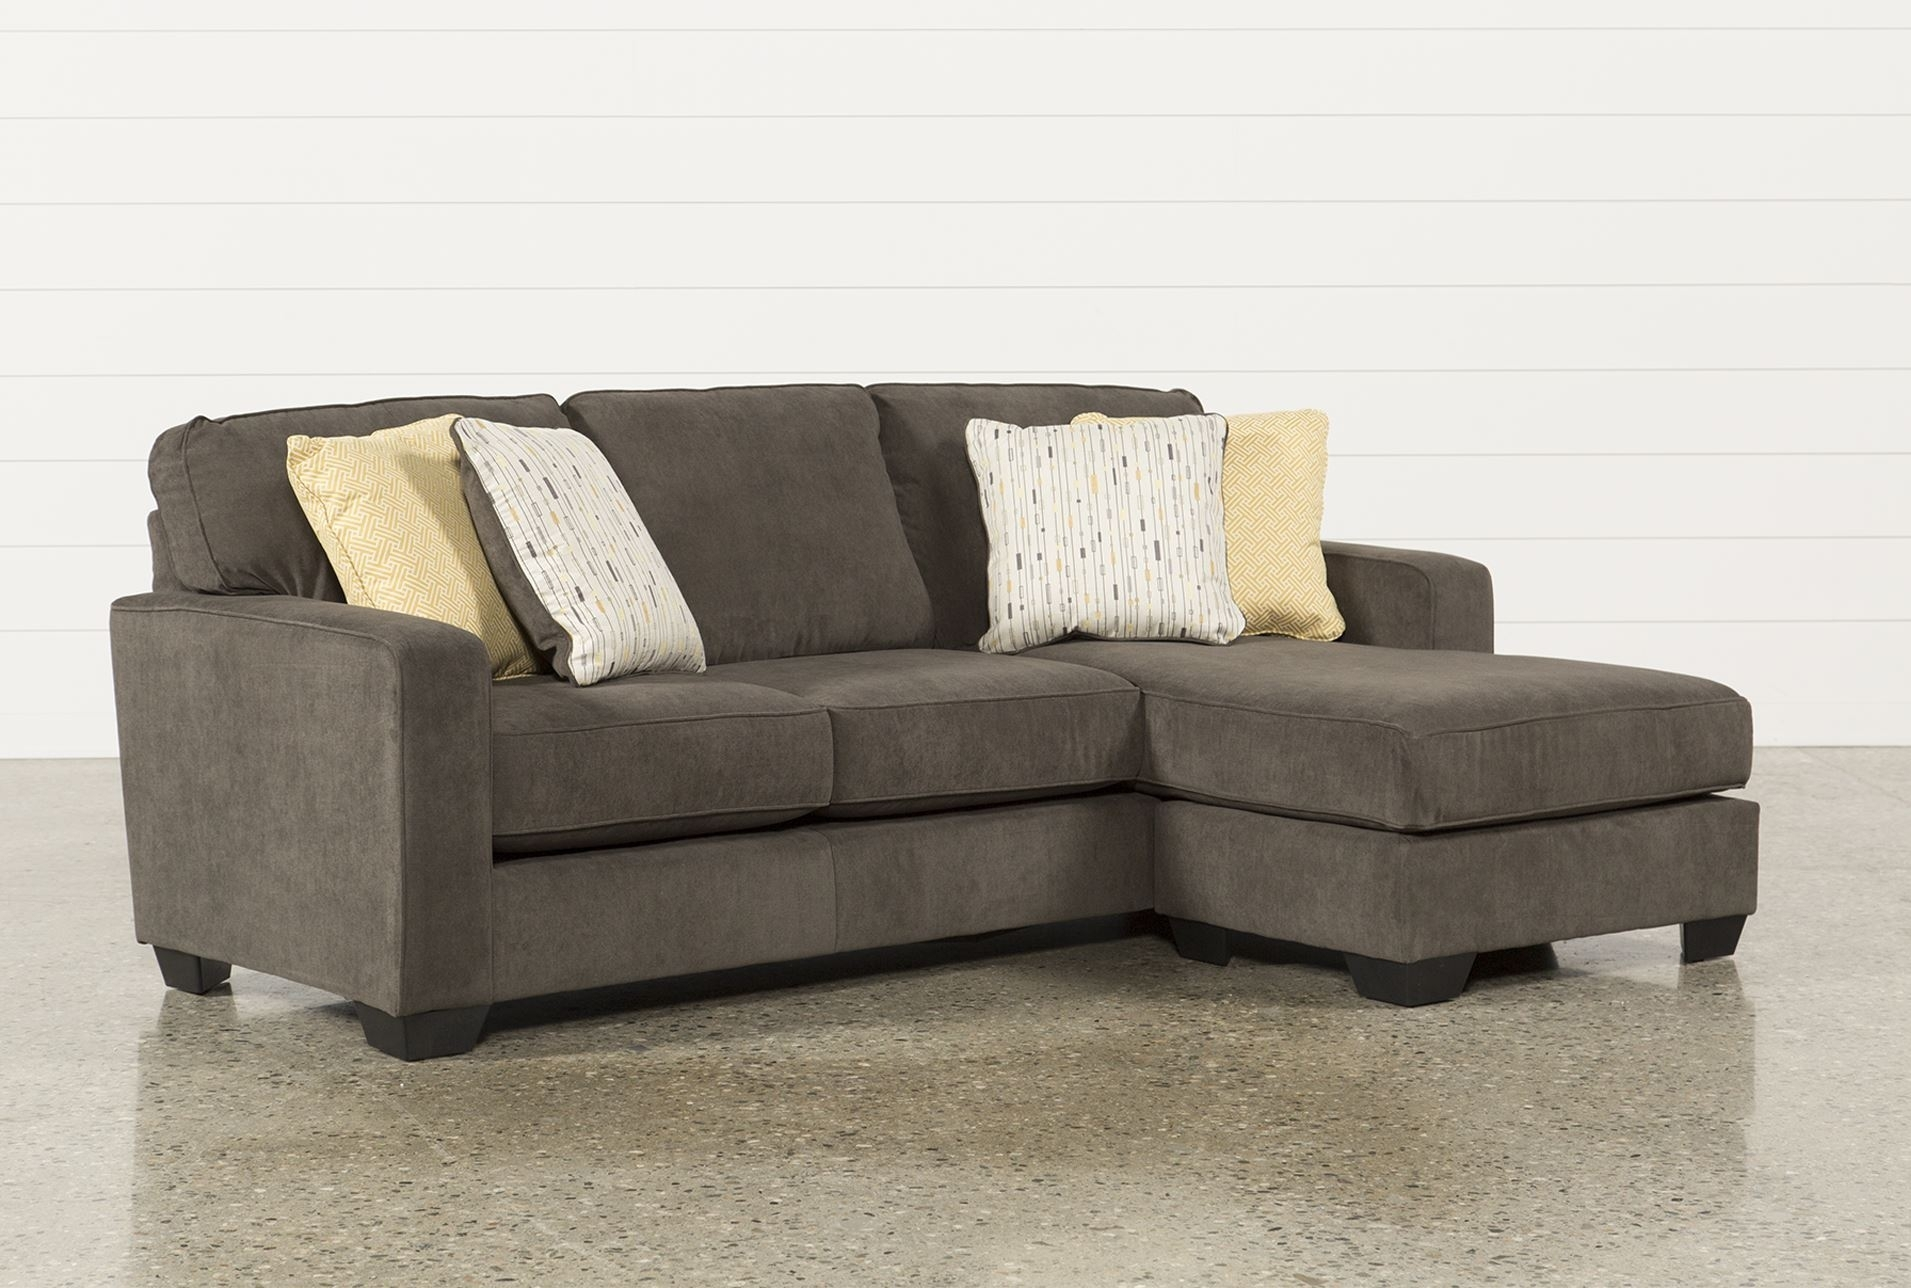 Modern Chesterfield Sofa Distressed Table Ashley Benton Blu Dot Intended For Benton 4 Piece Sectionals (Image 14 of 25)